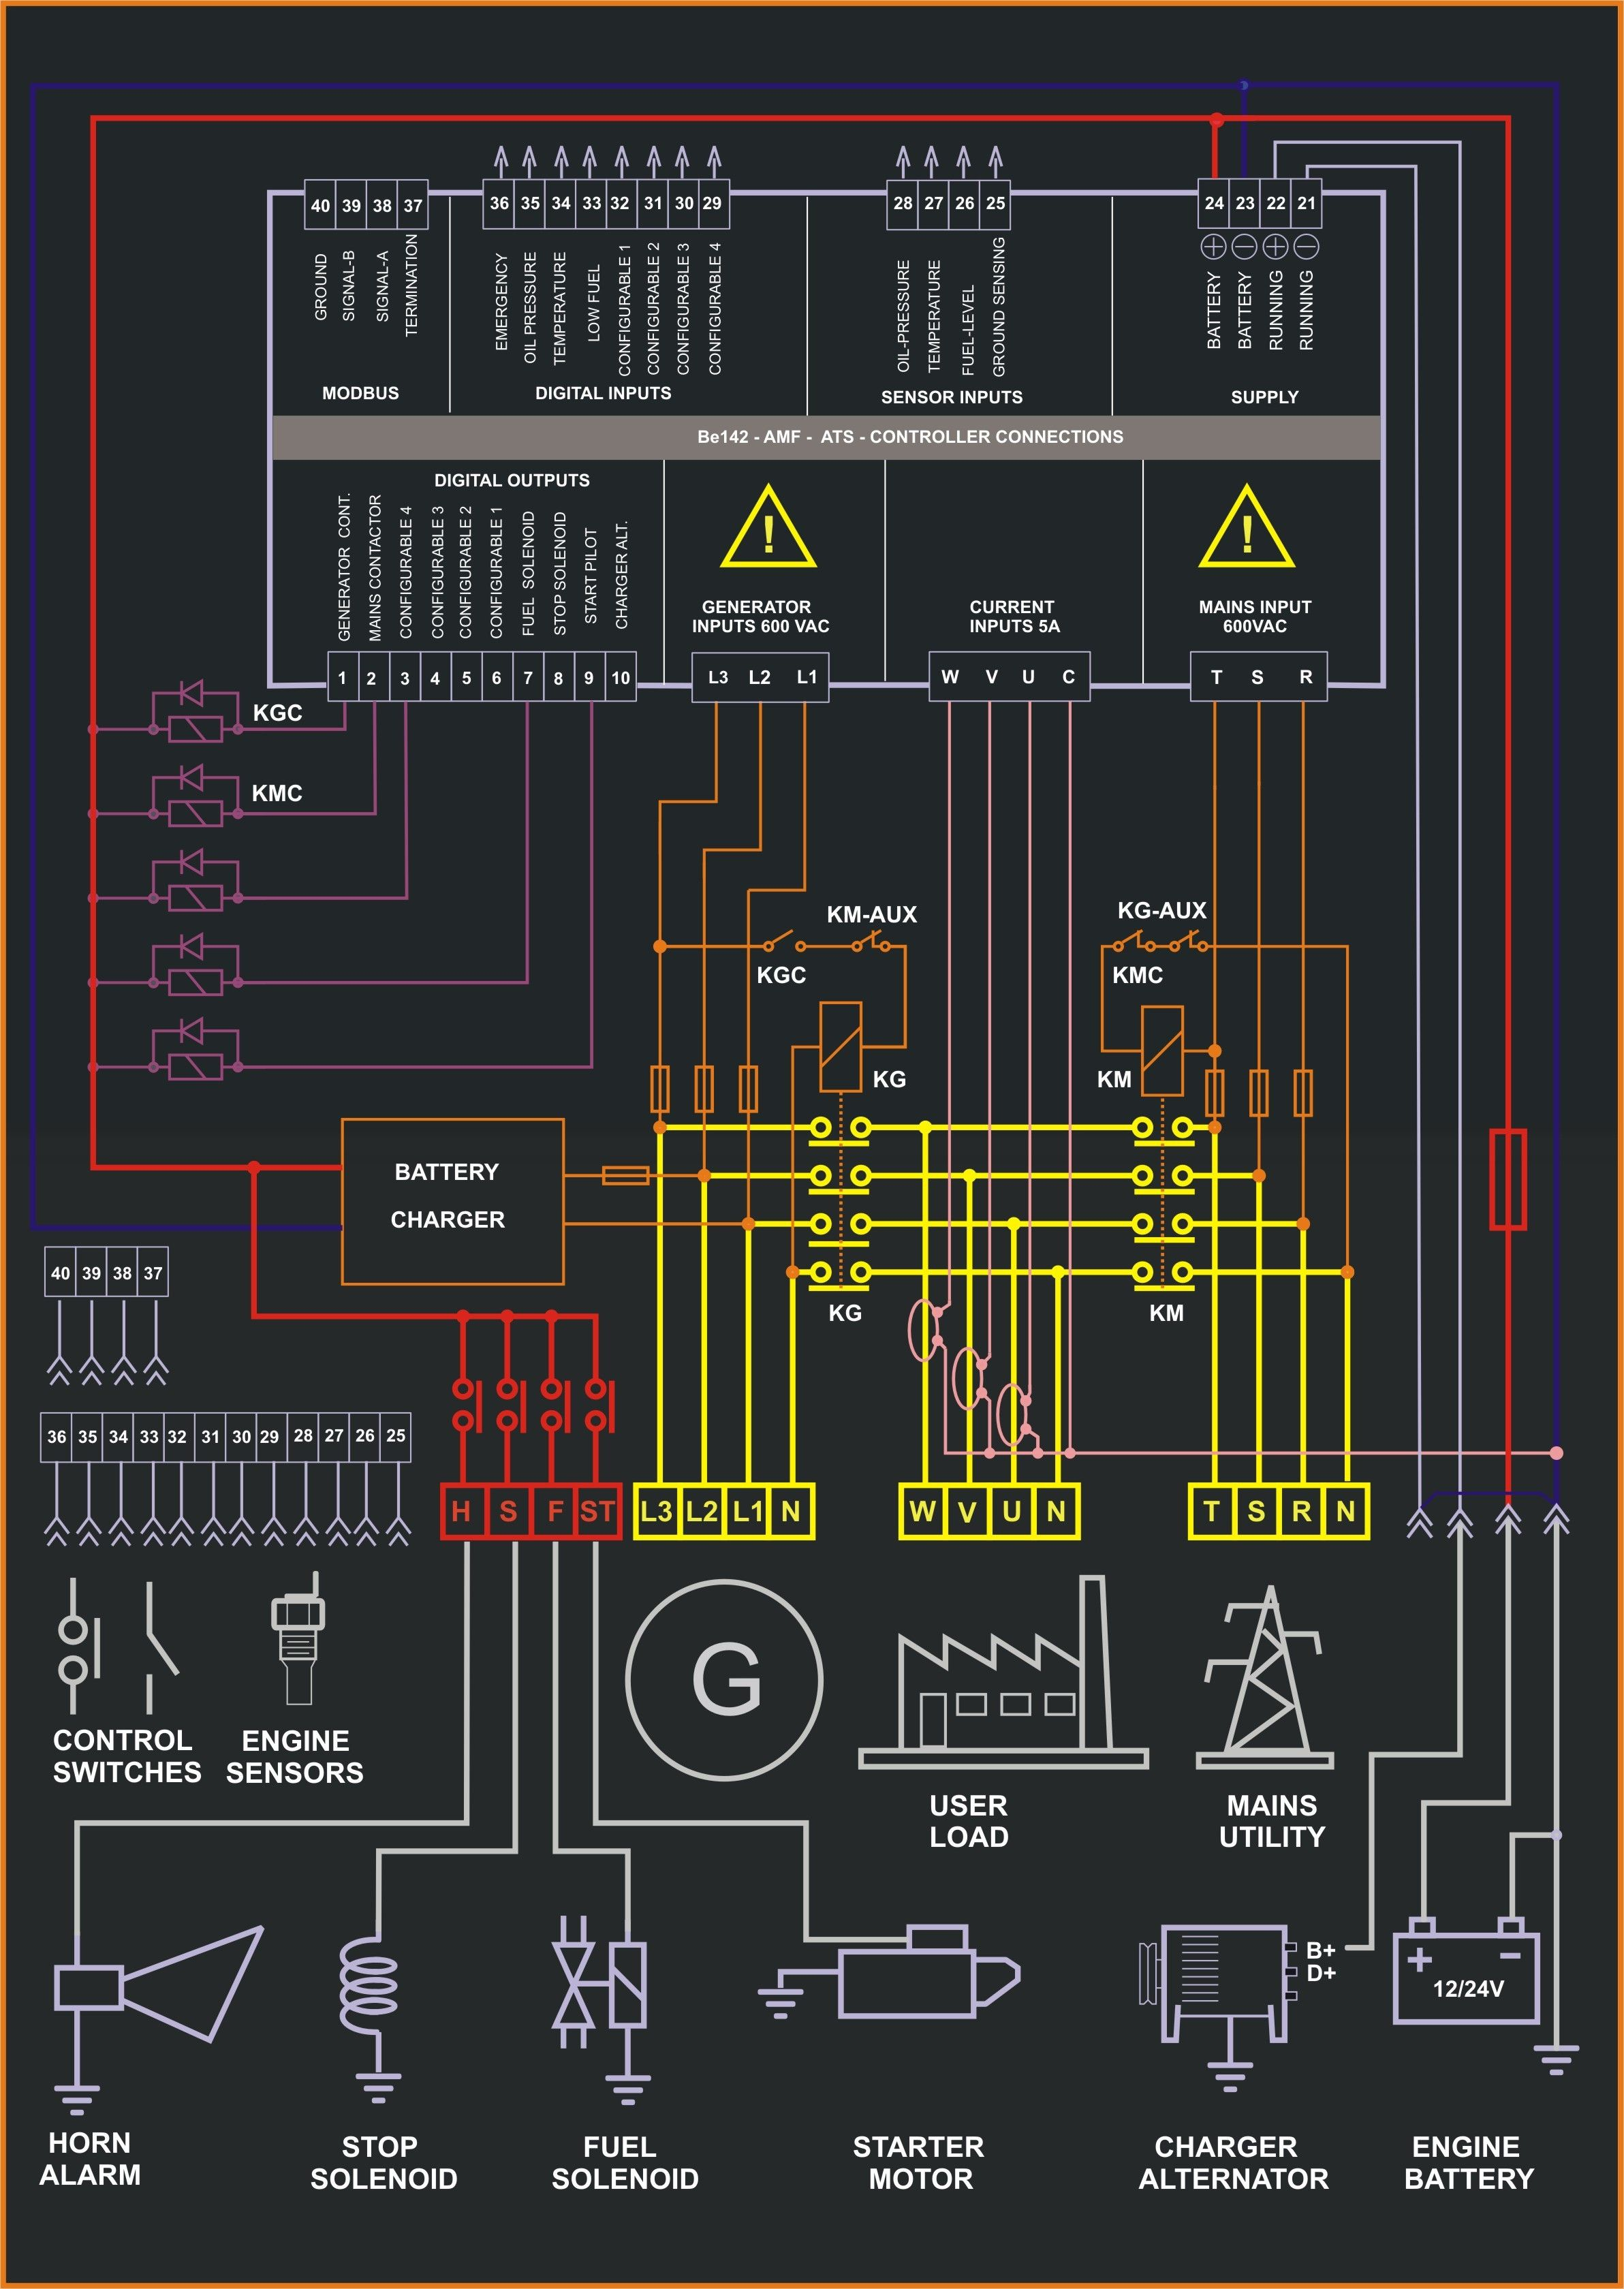 electrical panel board wiring diagram pdf fresh 41 awesome ... panel board wiring diagram smart board wiring diagram